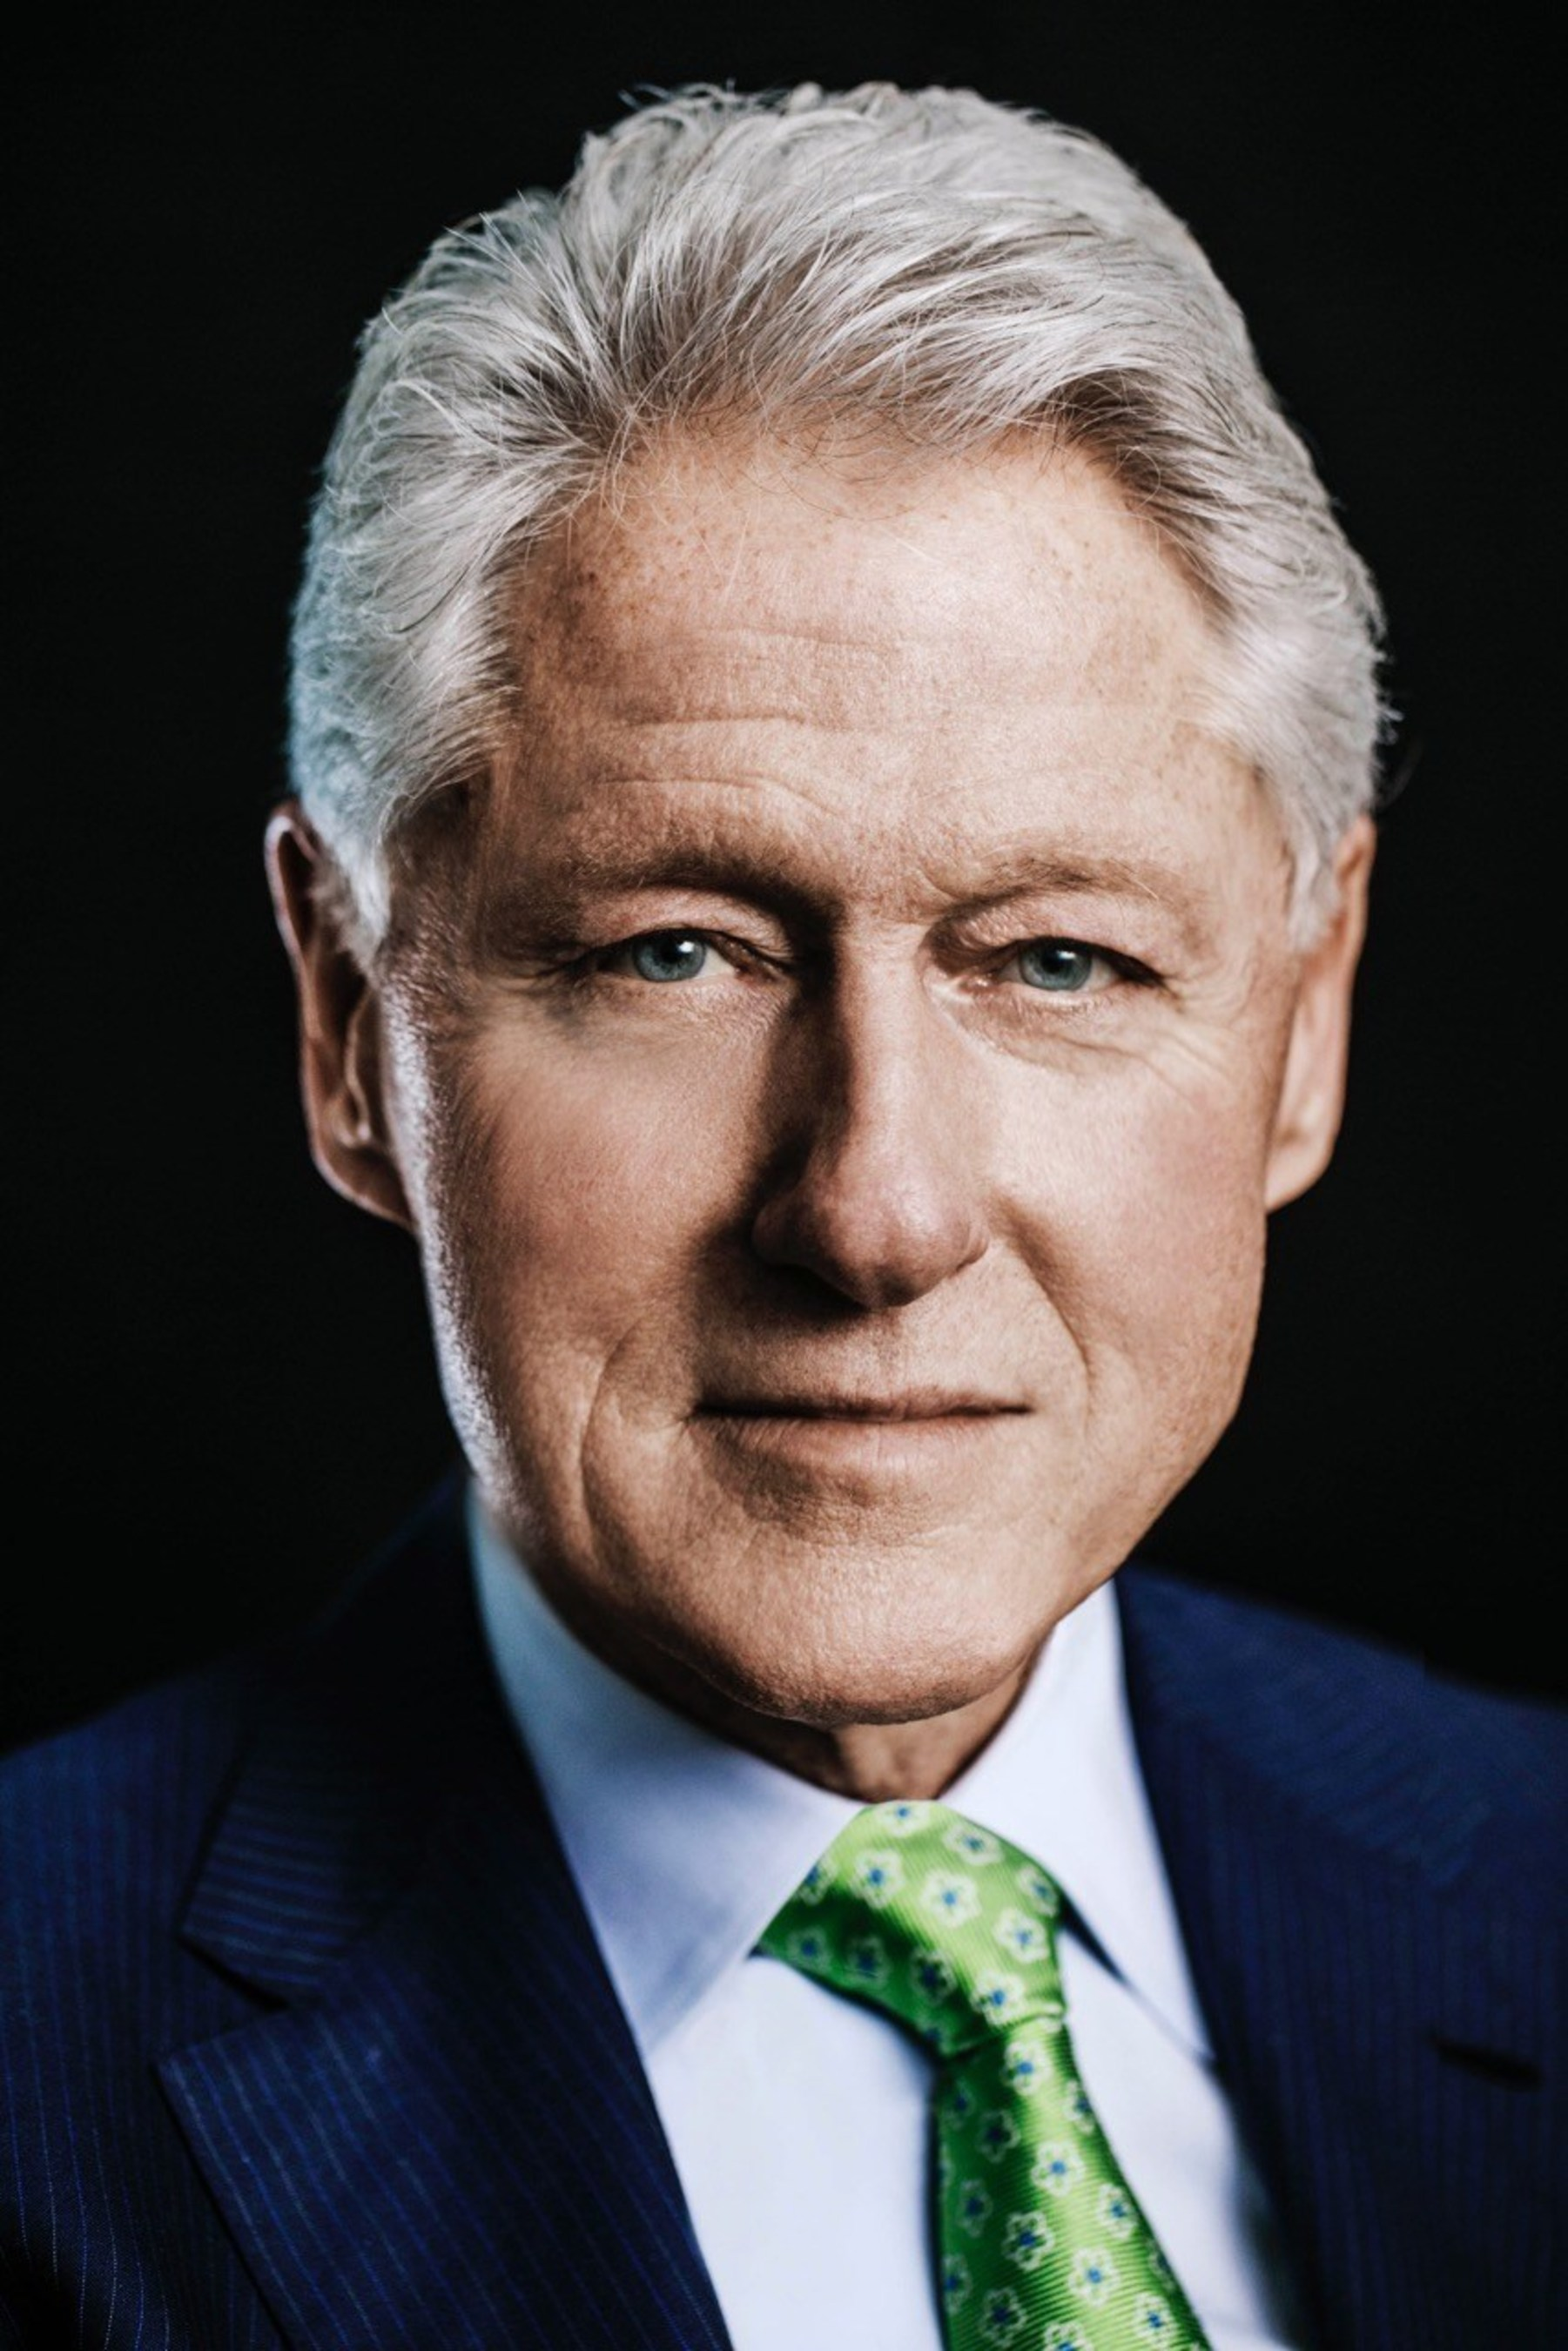 President Bill Clinton will speak at LMU's May 7 commencement ceremony.